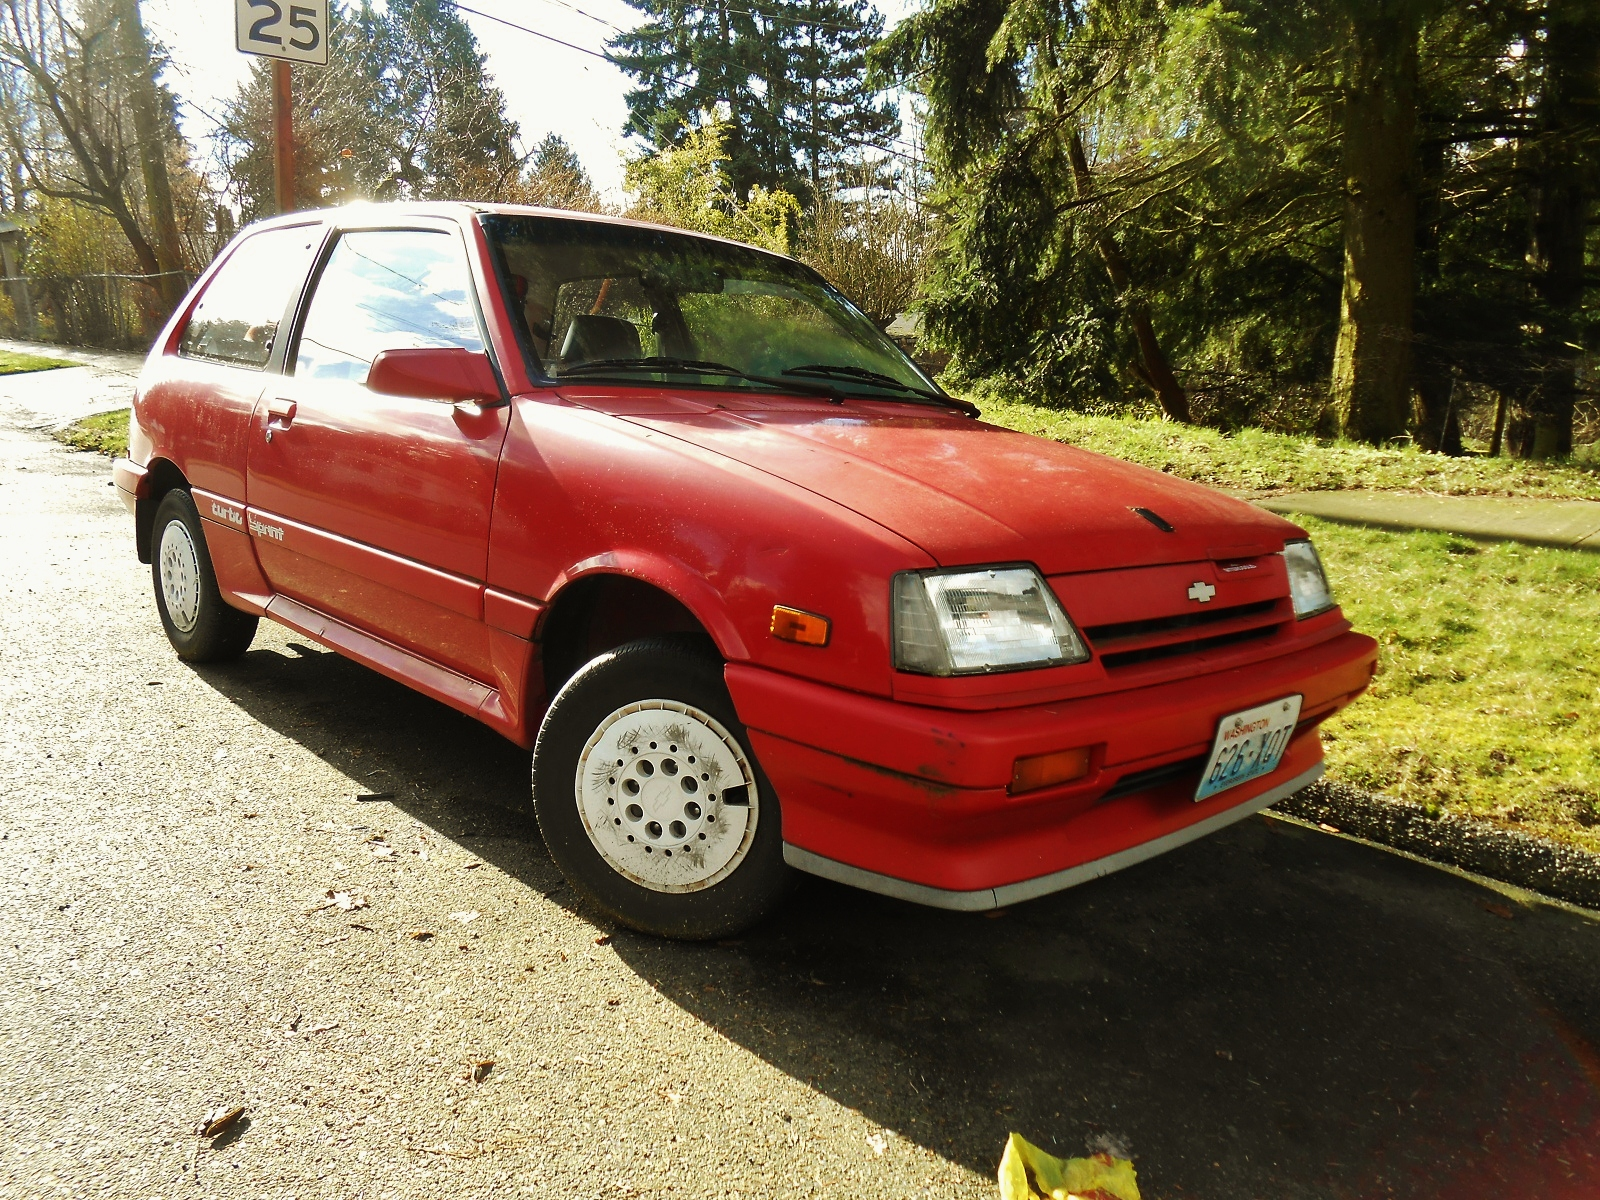 Seattle's Parked Cars: 1987 Chevrolet Sprint Turbo